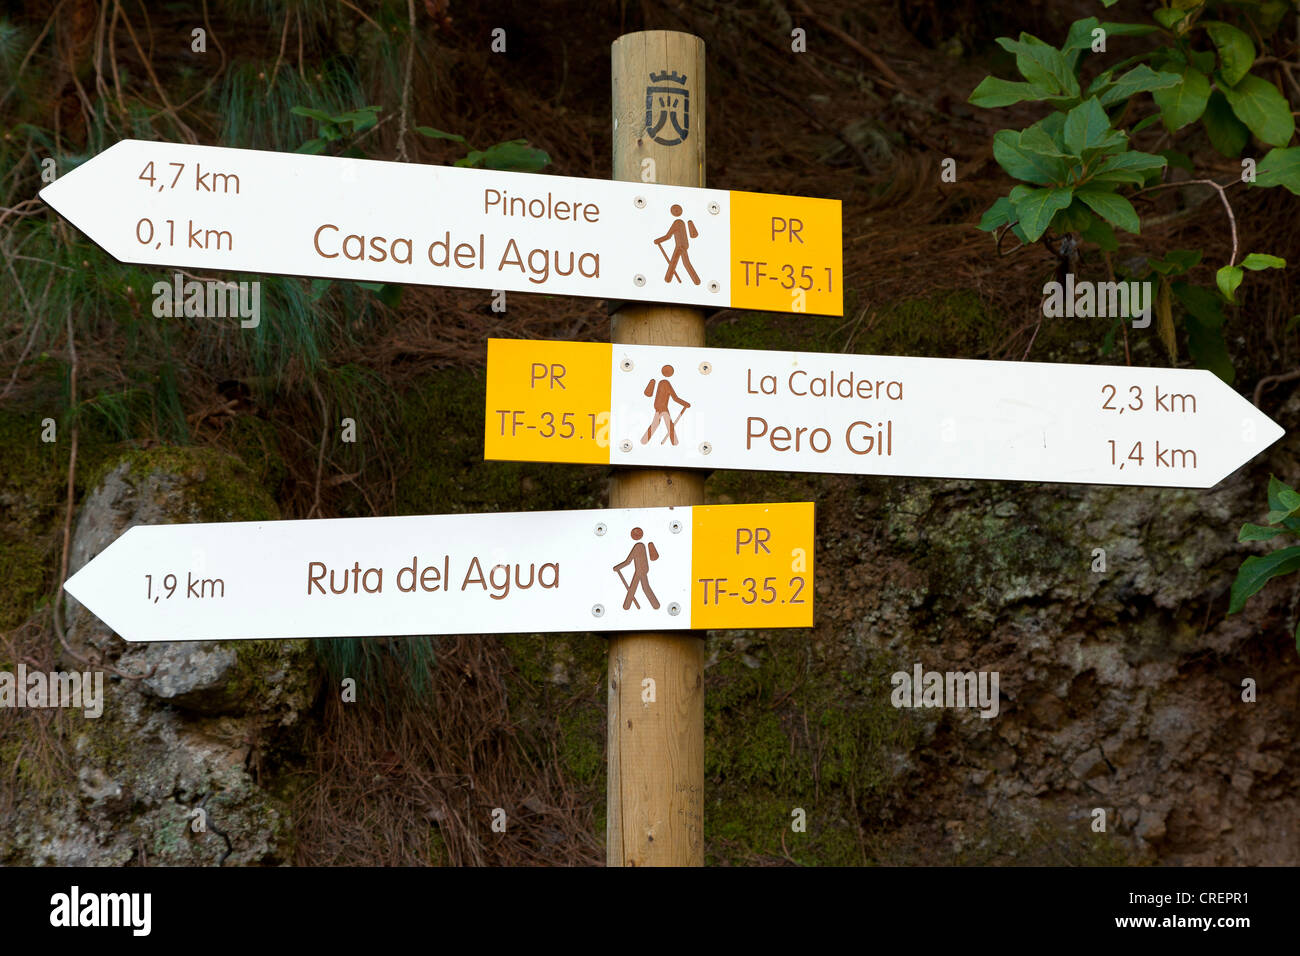 Signage, trail near Aguamansa, Tenerife, northern part, Canary Islands, Spain, Europe - Stock Image